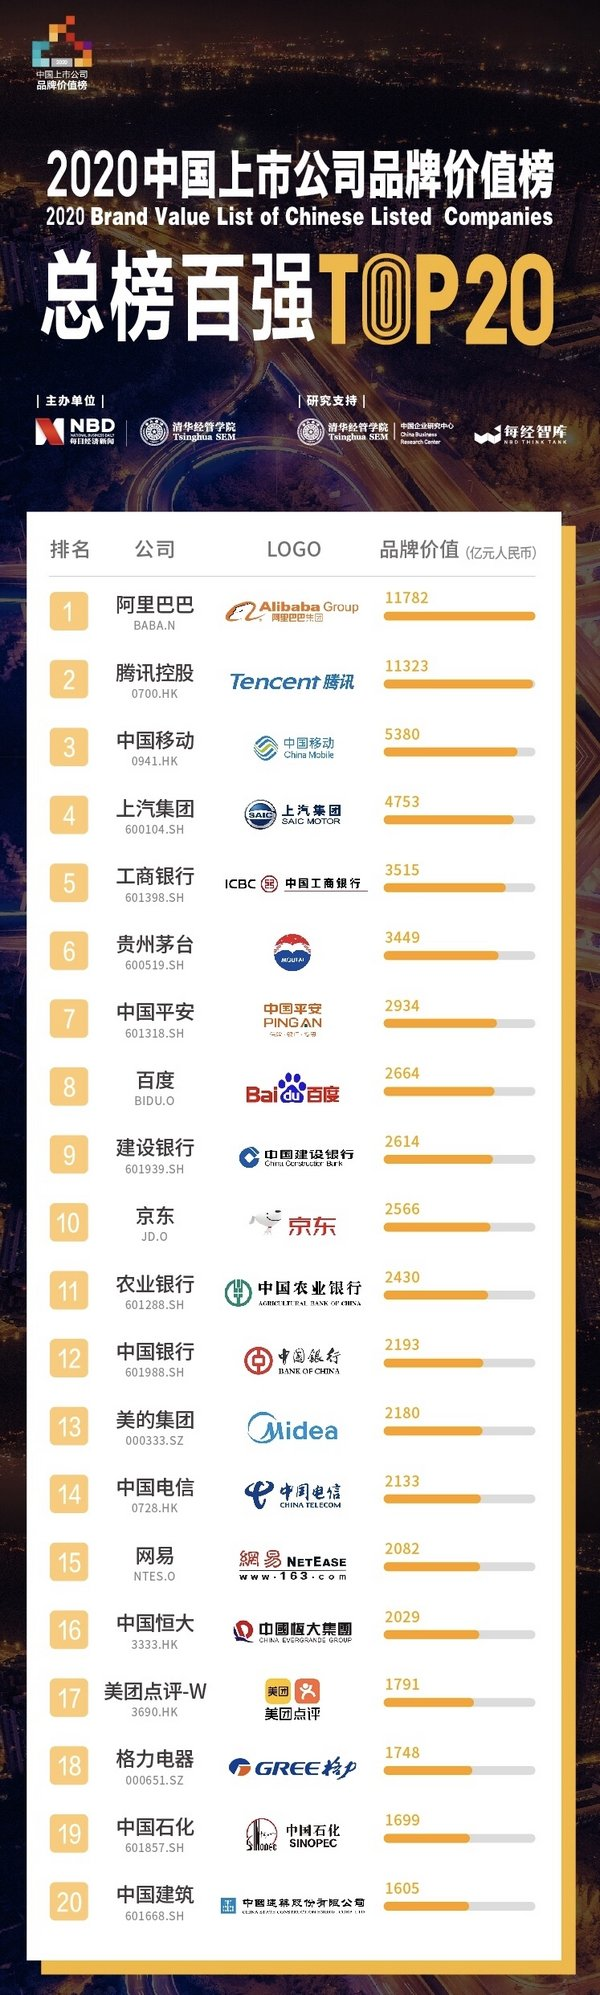 Top 50 Chinese Listed Companies by Brand Value Overseas (top 20)